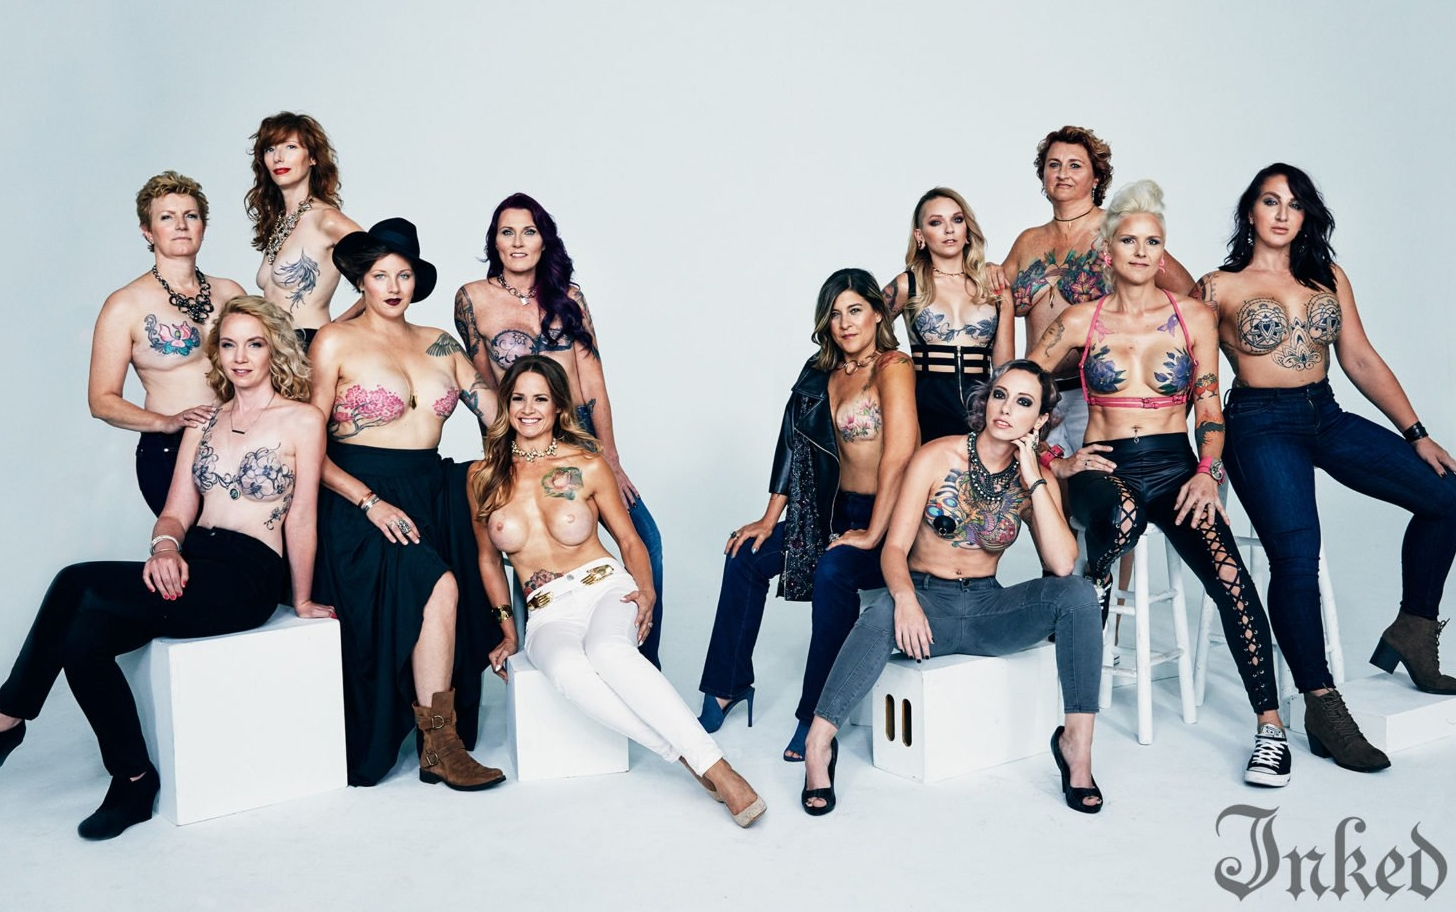 12 Women With Breast Cancer Survivor Tattoos Pose in a Powerful Photo Series